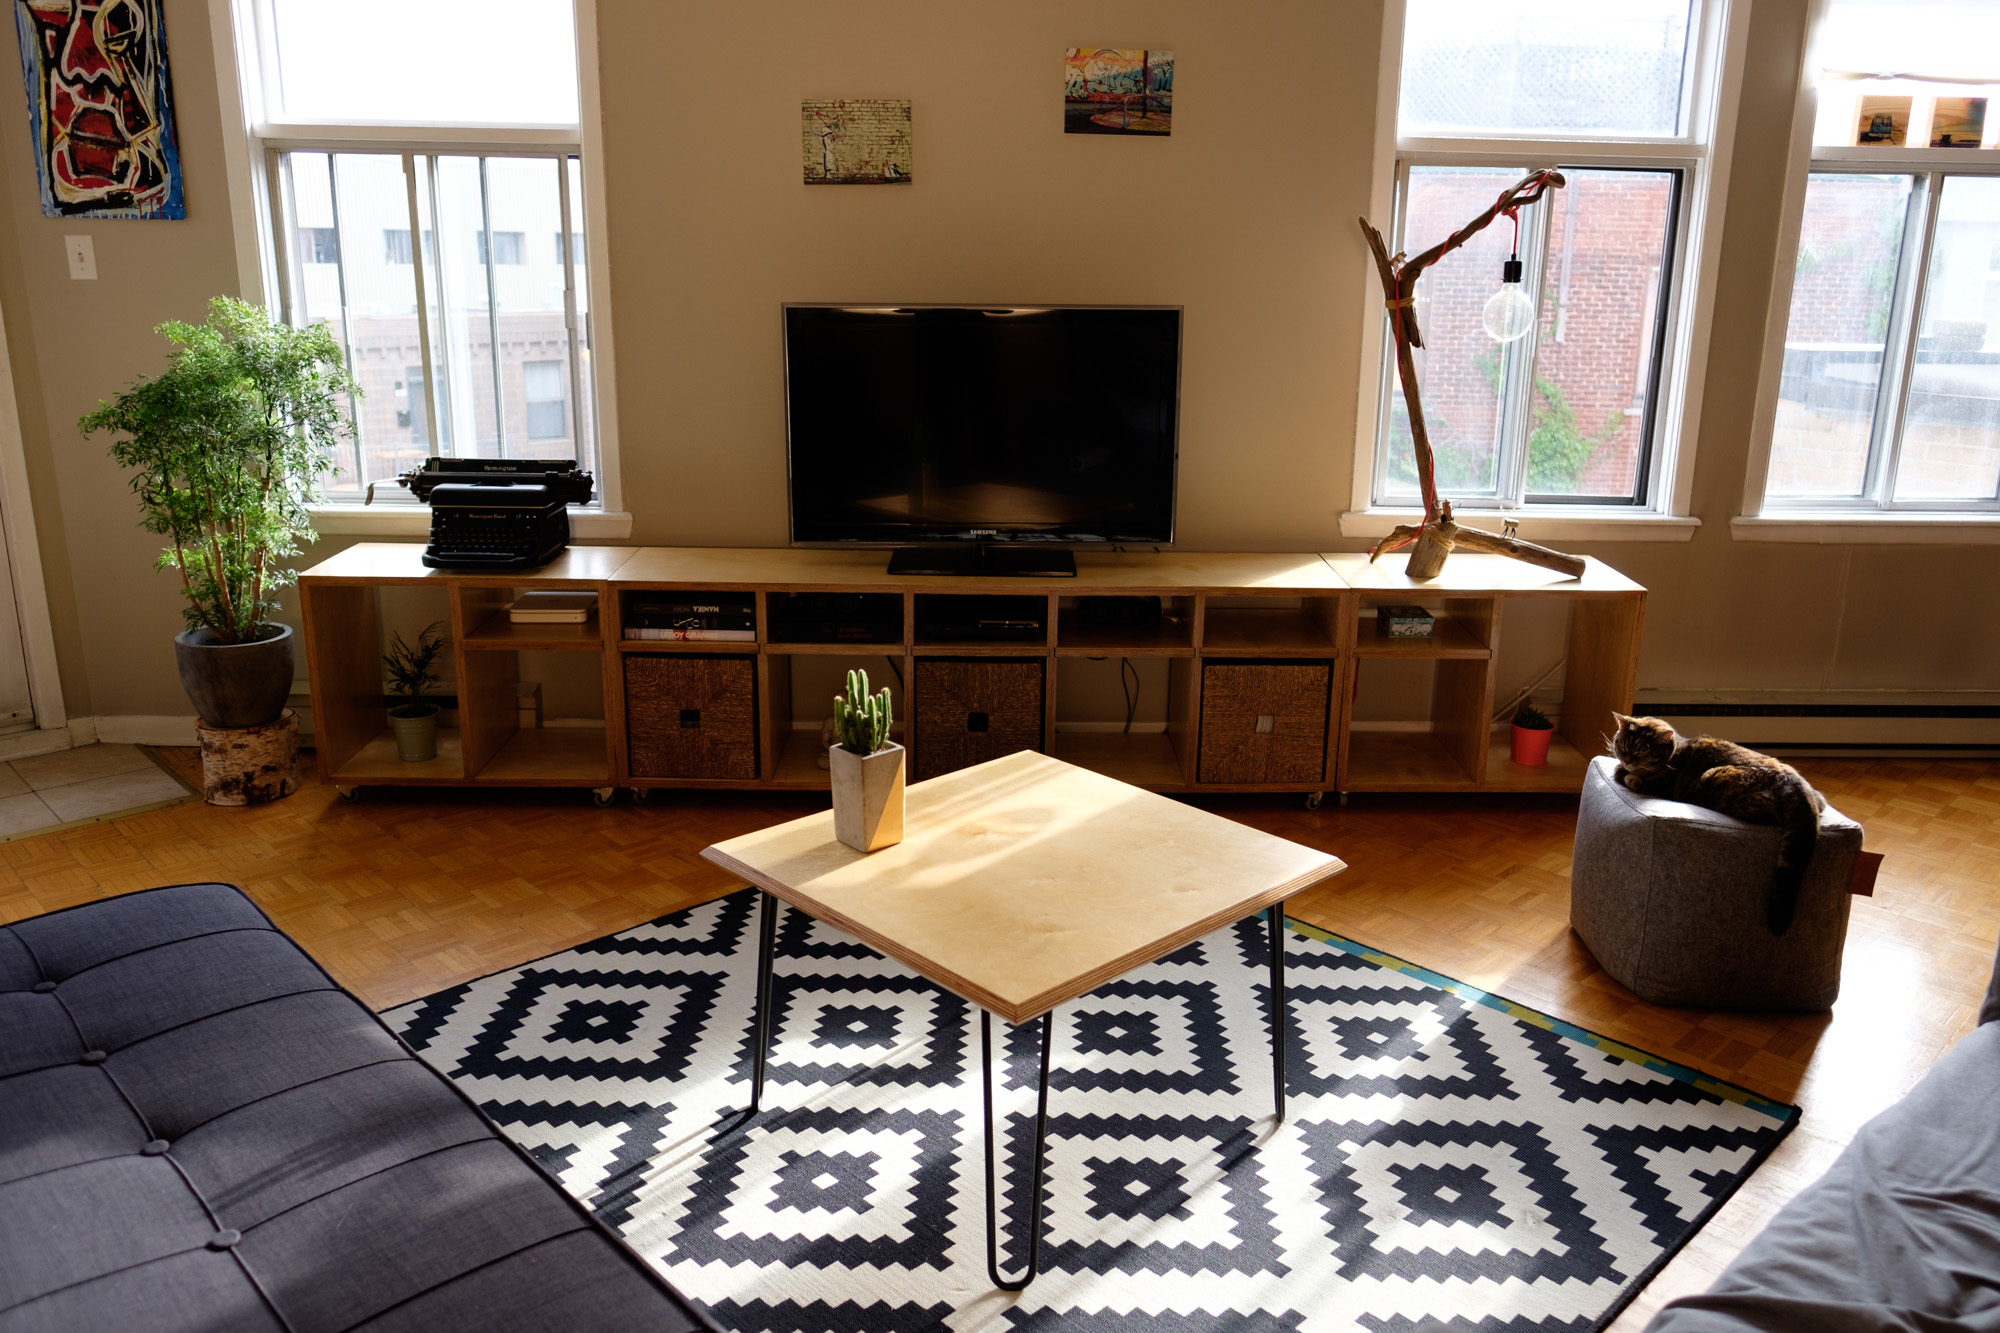 Outgrowing Ikea Building a modular TV Stand and coffee table